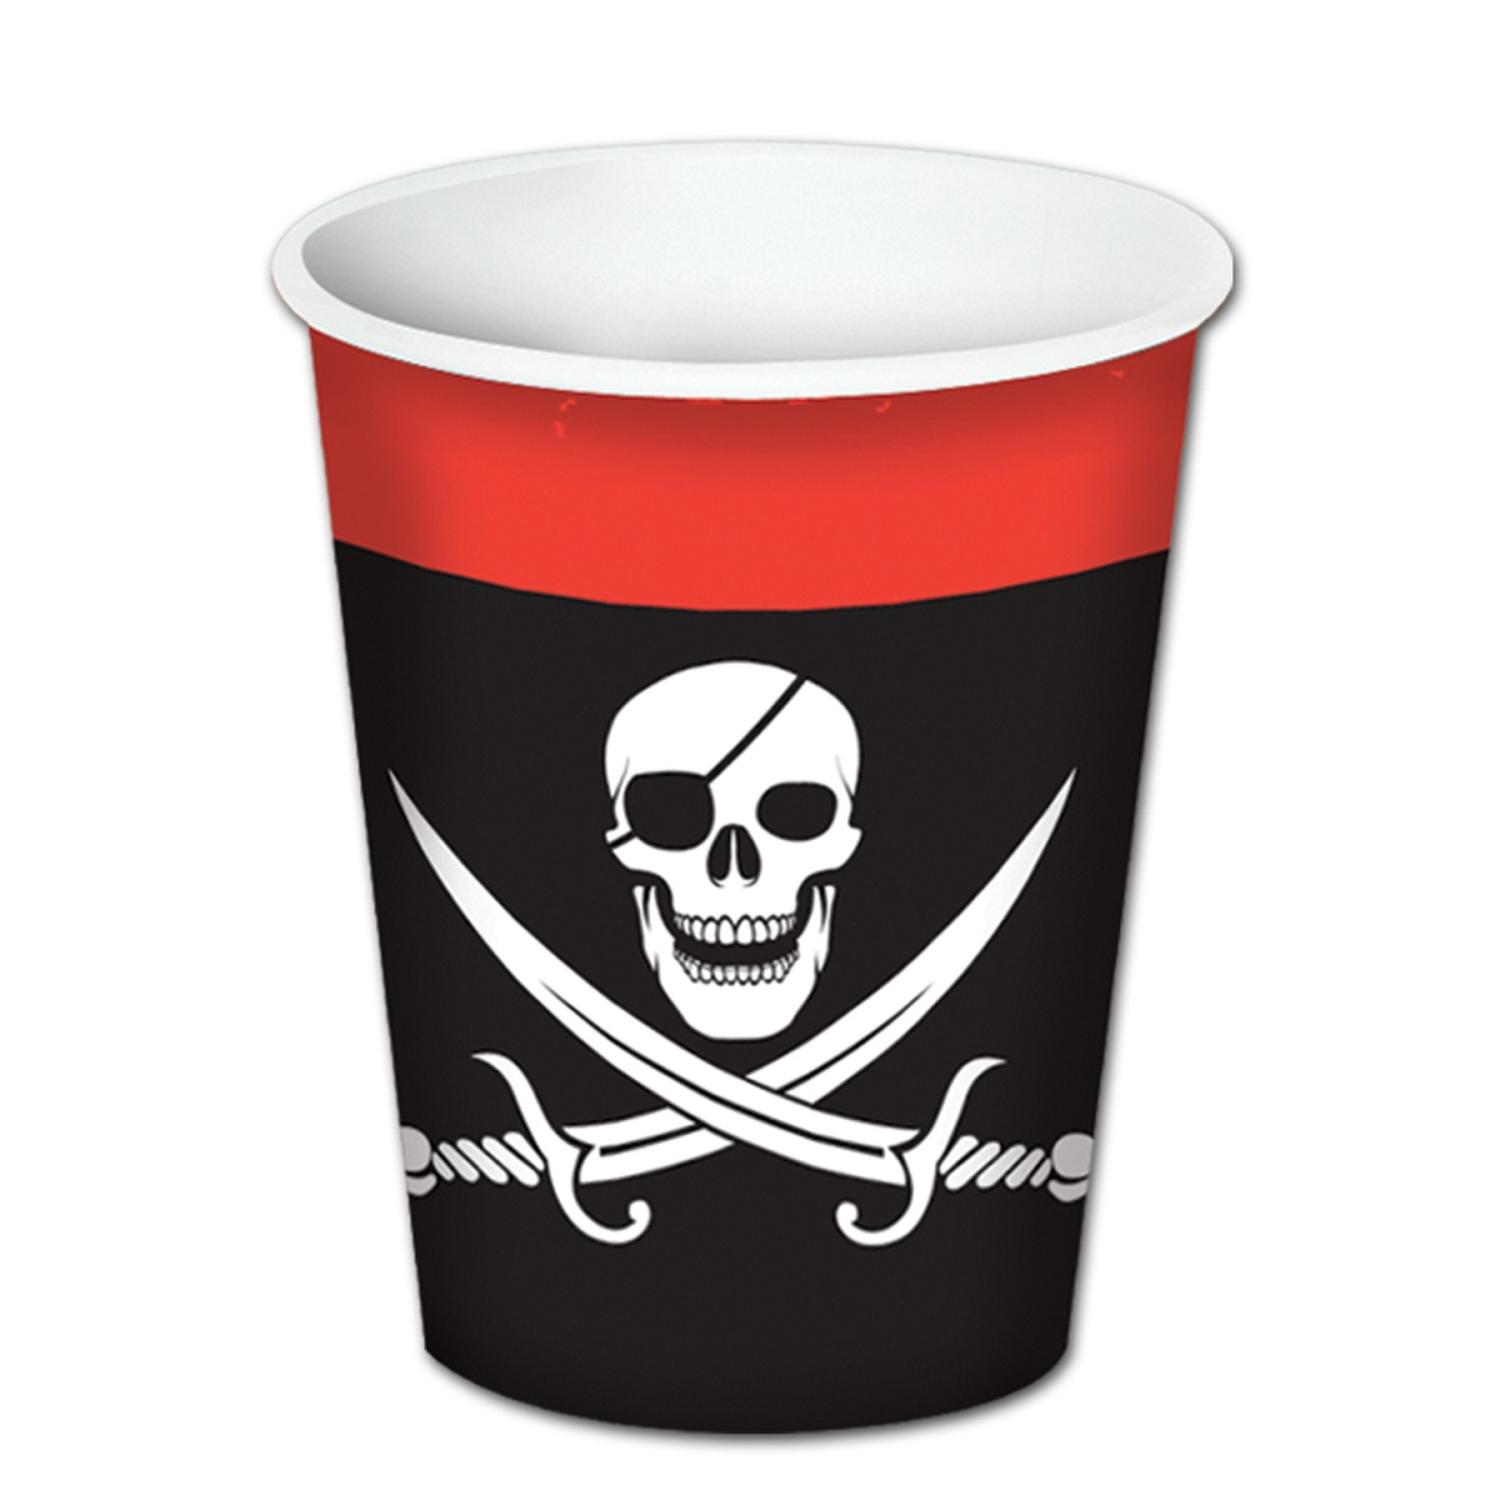 Club Pack of 96 Pirate Disposable Paper Hot and Cold Beverage Cups 9 oz.